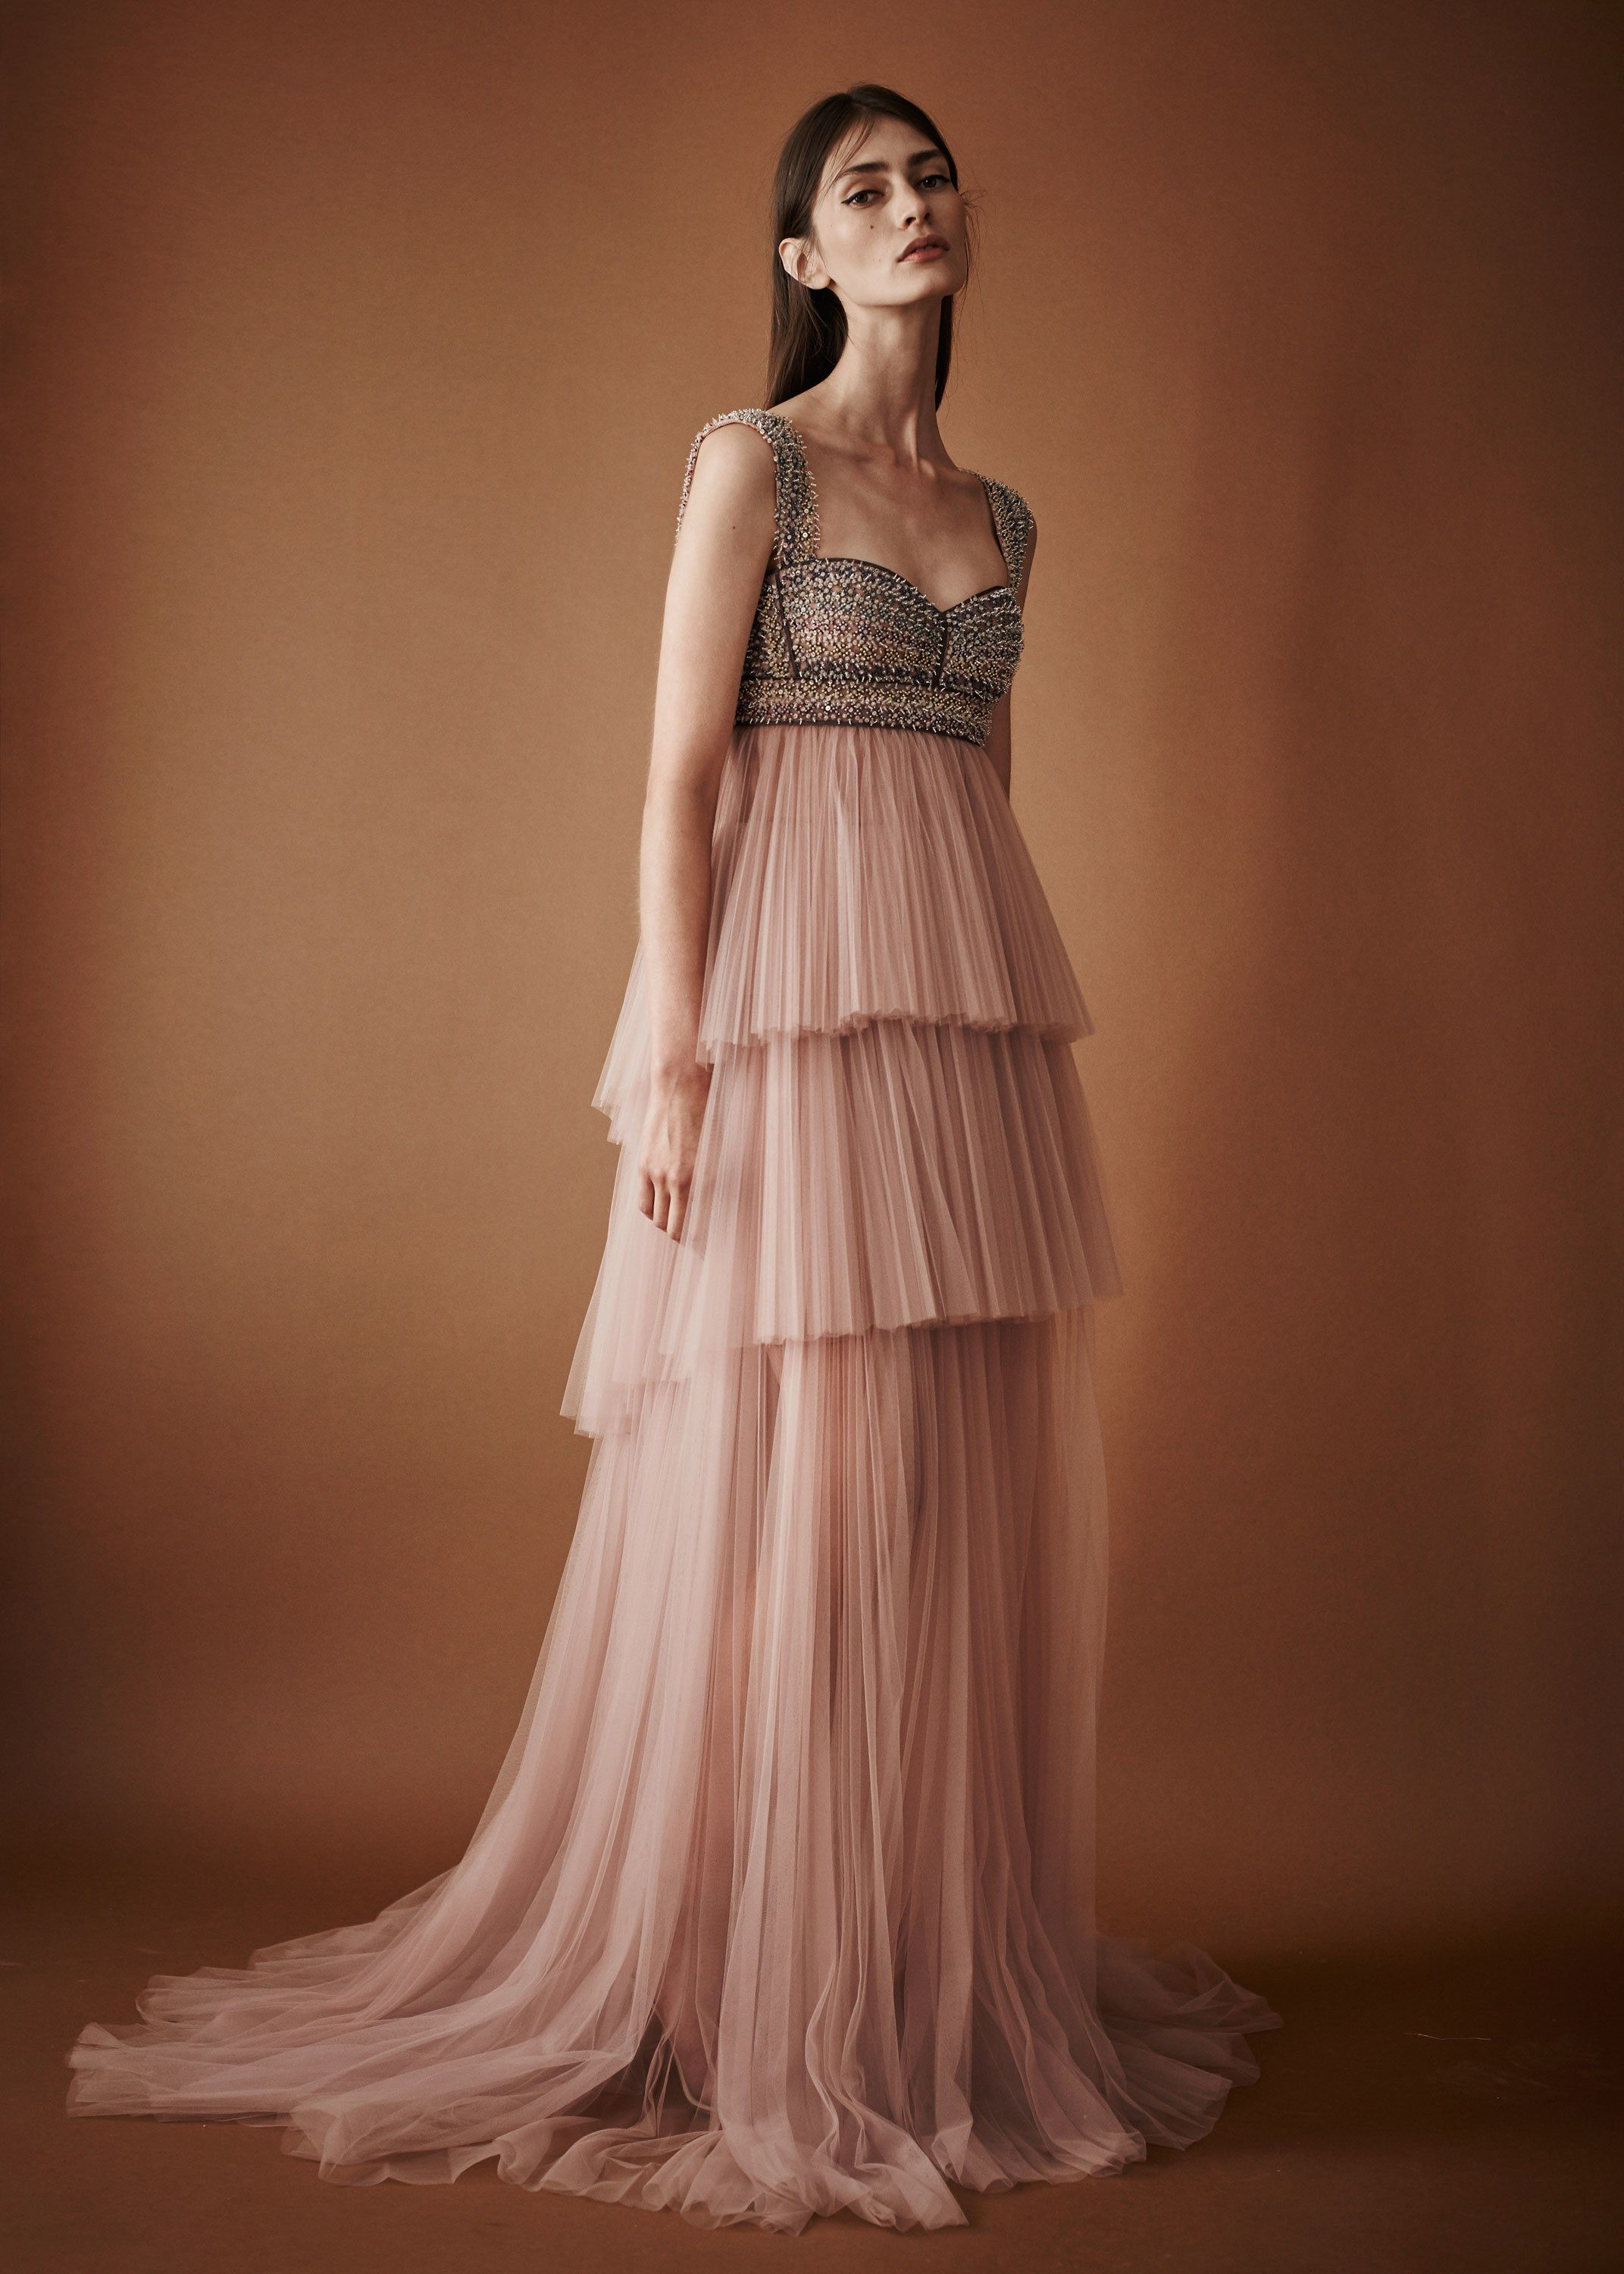 J. Mendel Spring 2018 Ready-to-Wear Fashion Show in 2018 | Costumes ...